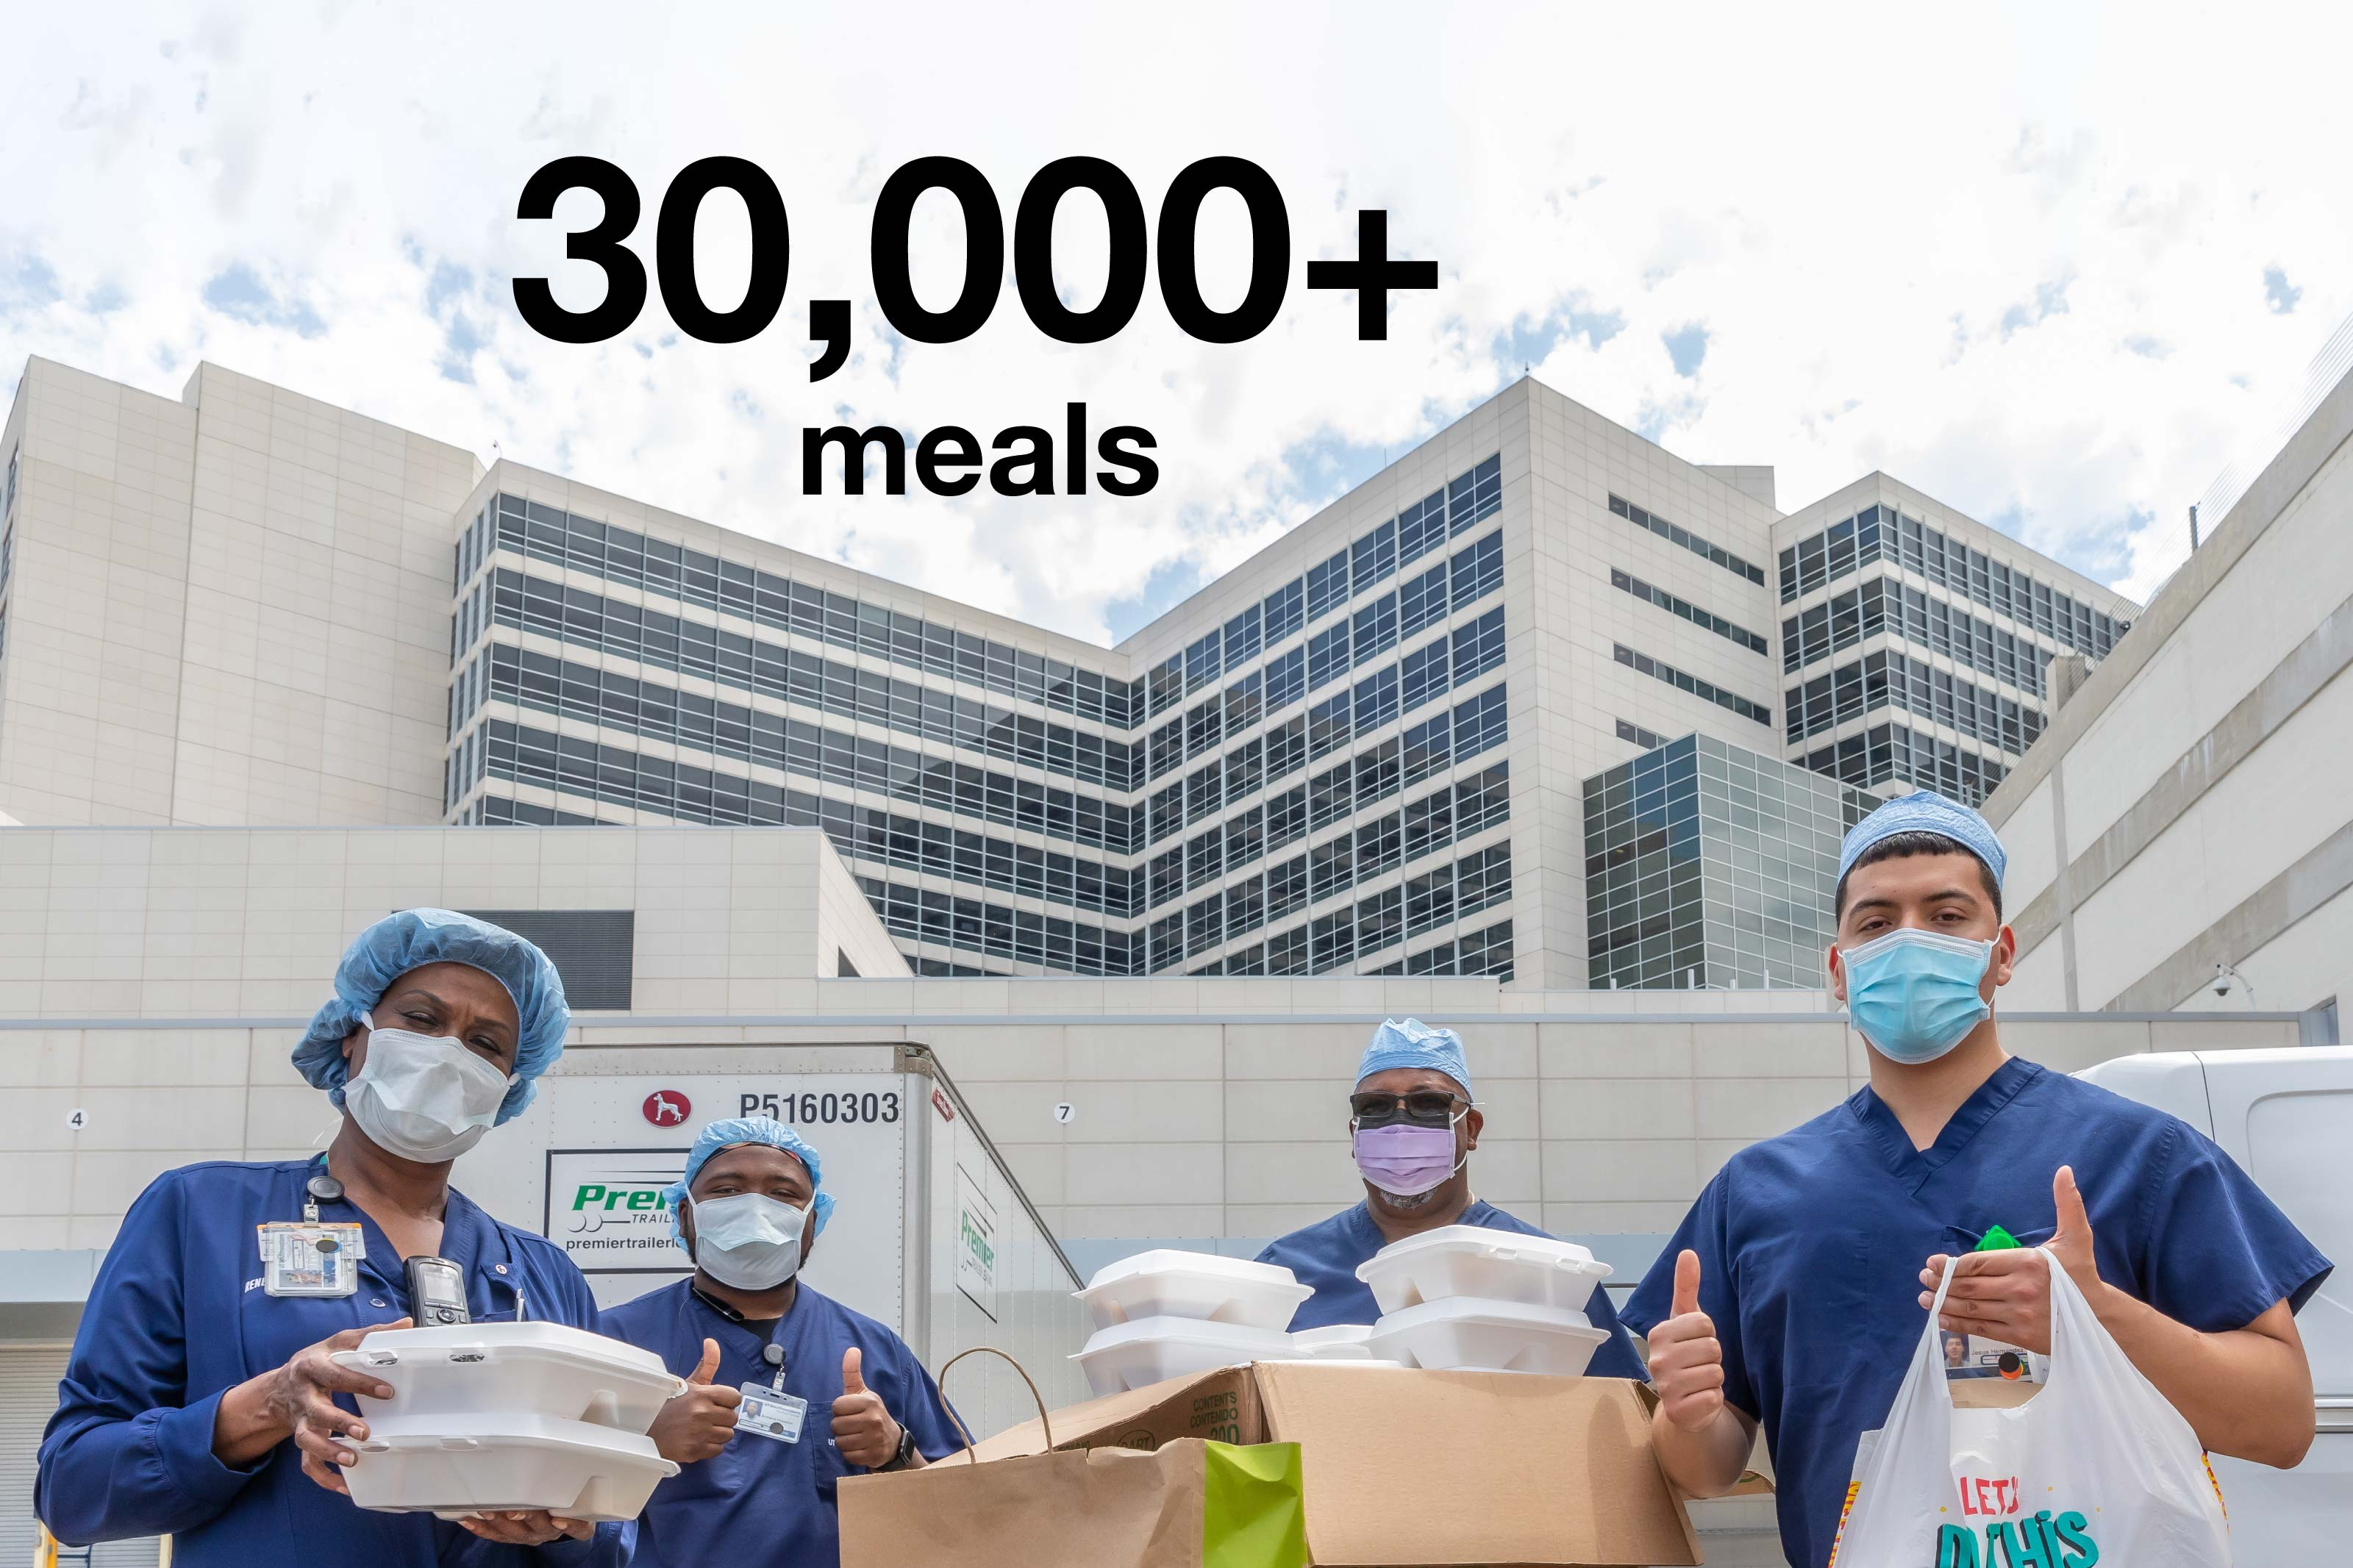 Infographic illustrating people donated more than 30,000 meals to UT Southwestern